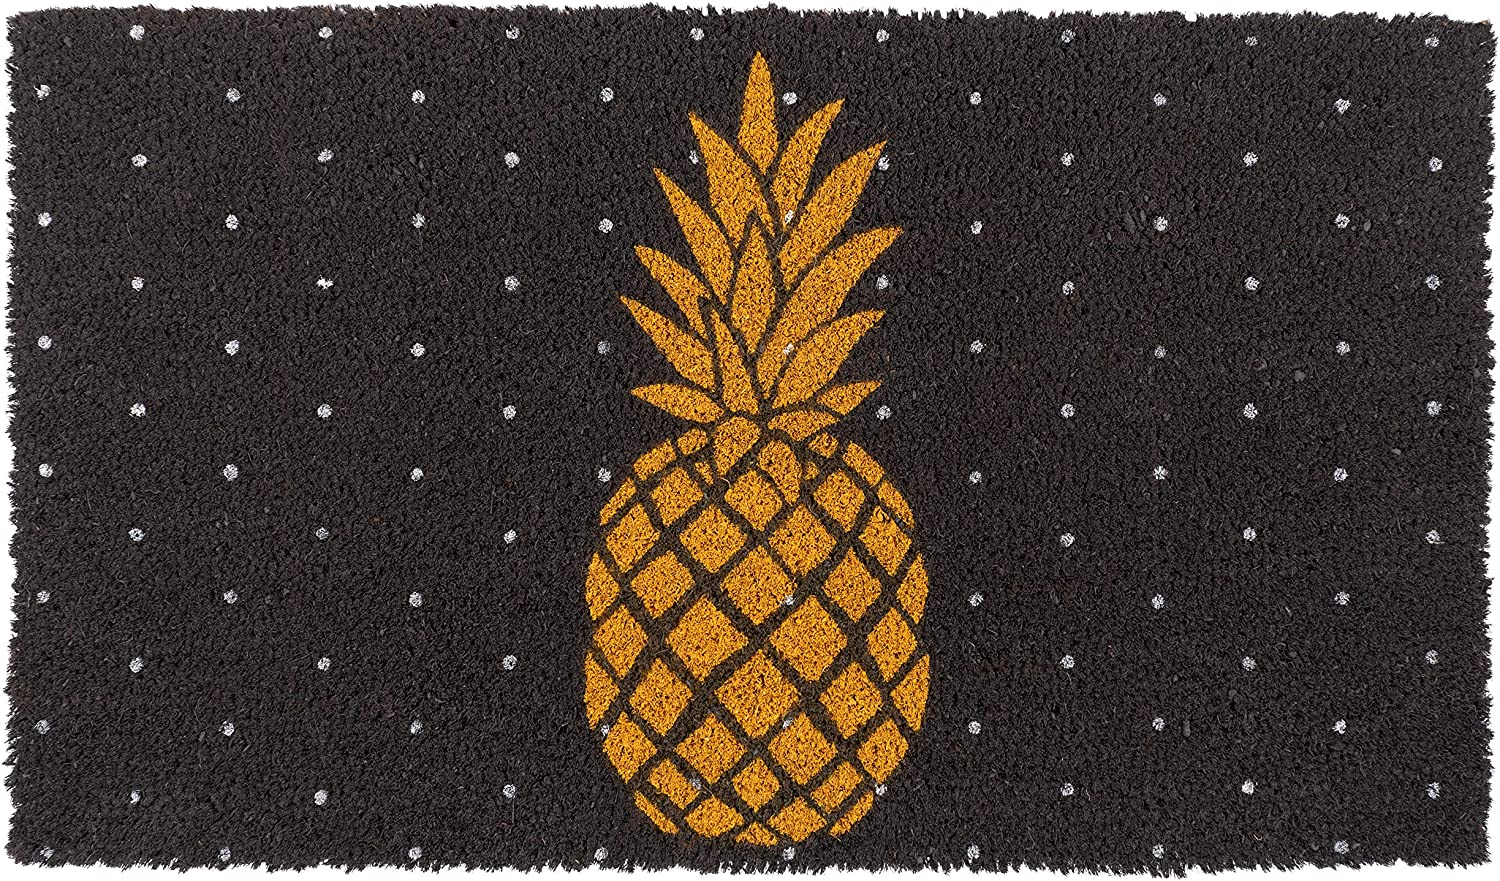 New KAF Home Coir Doormat with Heavy-Duty, Weather Resistant, Non-Slip PVC Backing | 17 by 30 Inches, 0.6 Inch Pile Height | Perfect for Indoor and Outdoor Use (Pineapple)